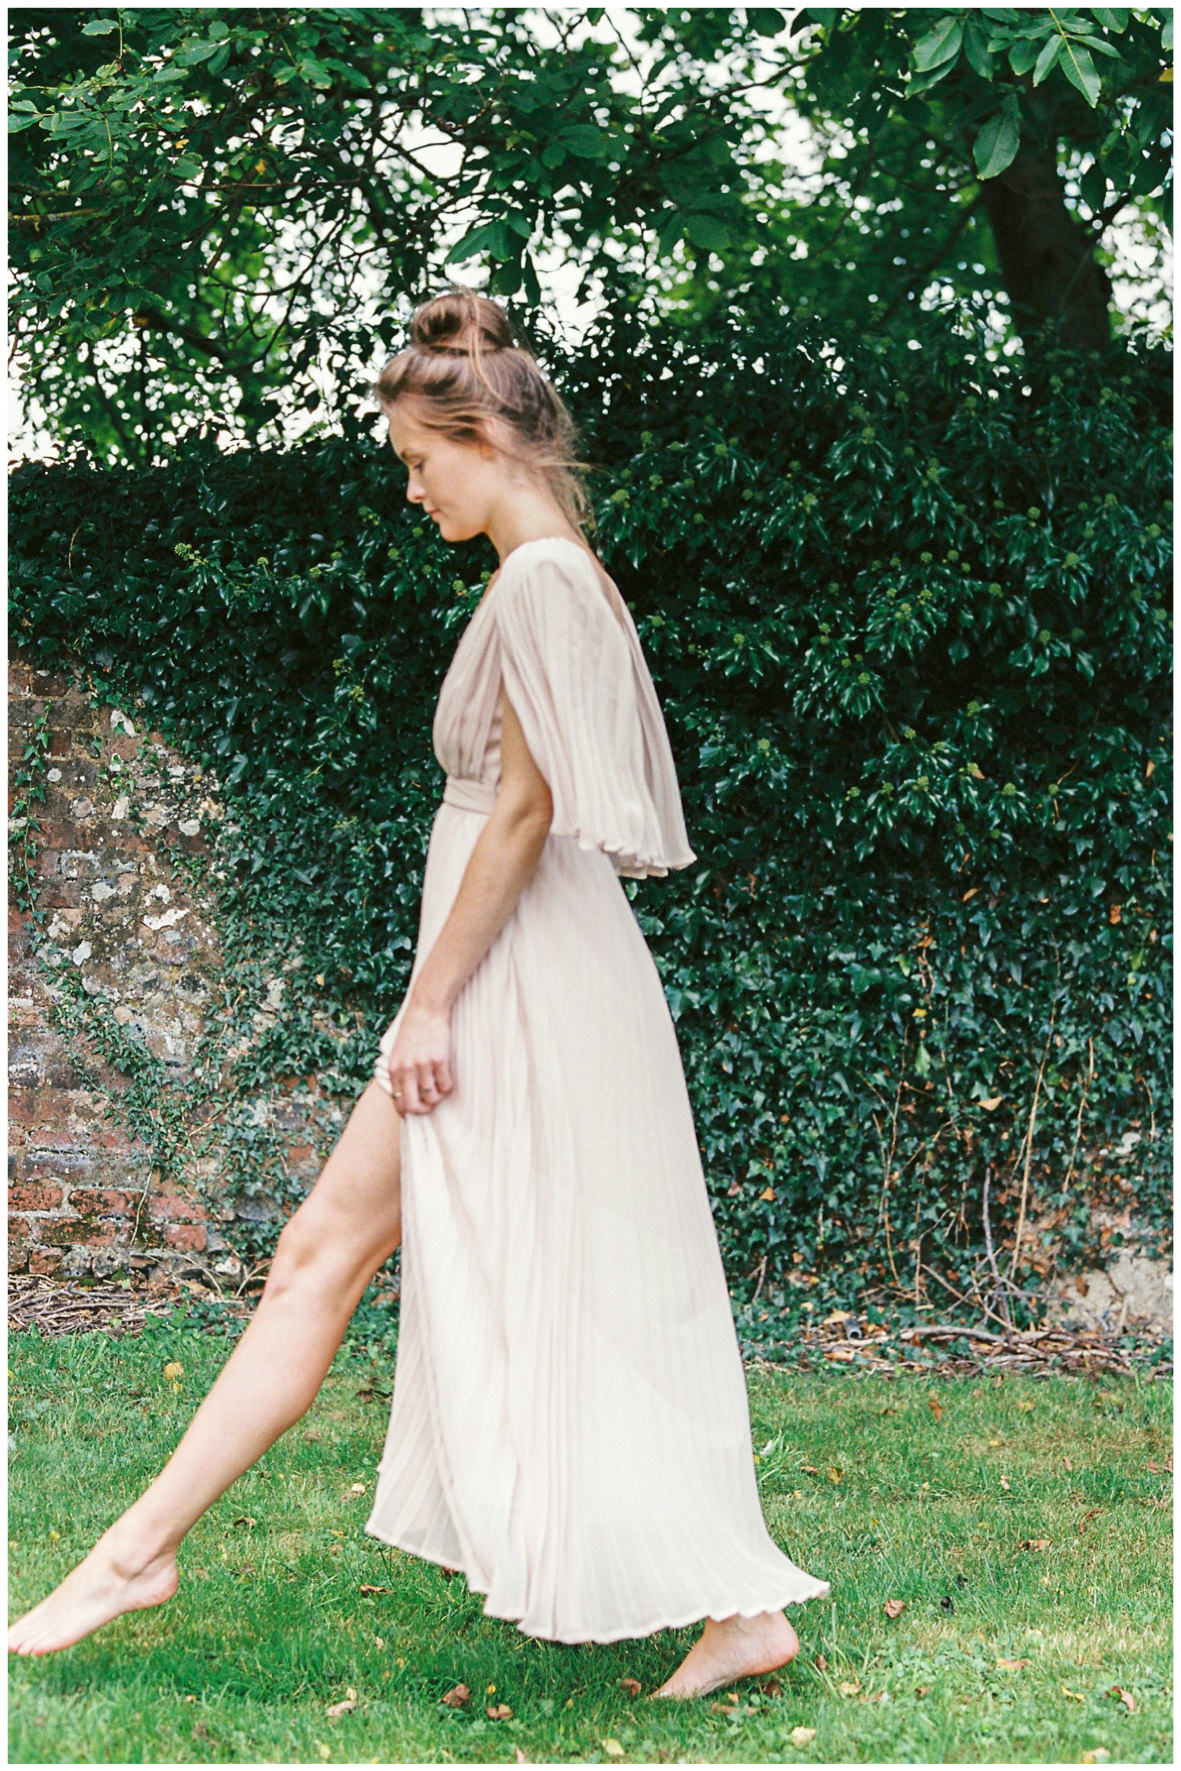 Lucy Davenport Photography, Once Wed, Home Creations, The Wedding Stylist, Verity & Thyme, model walking through grass, coloured dress